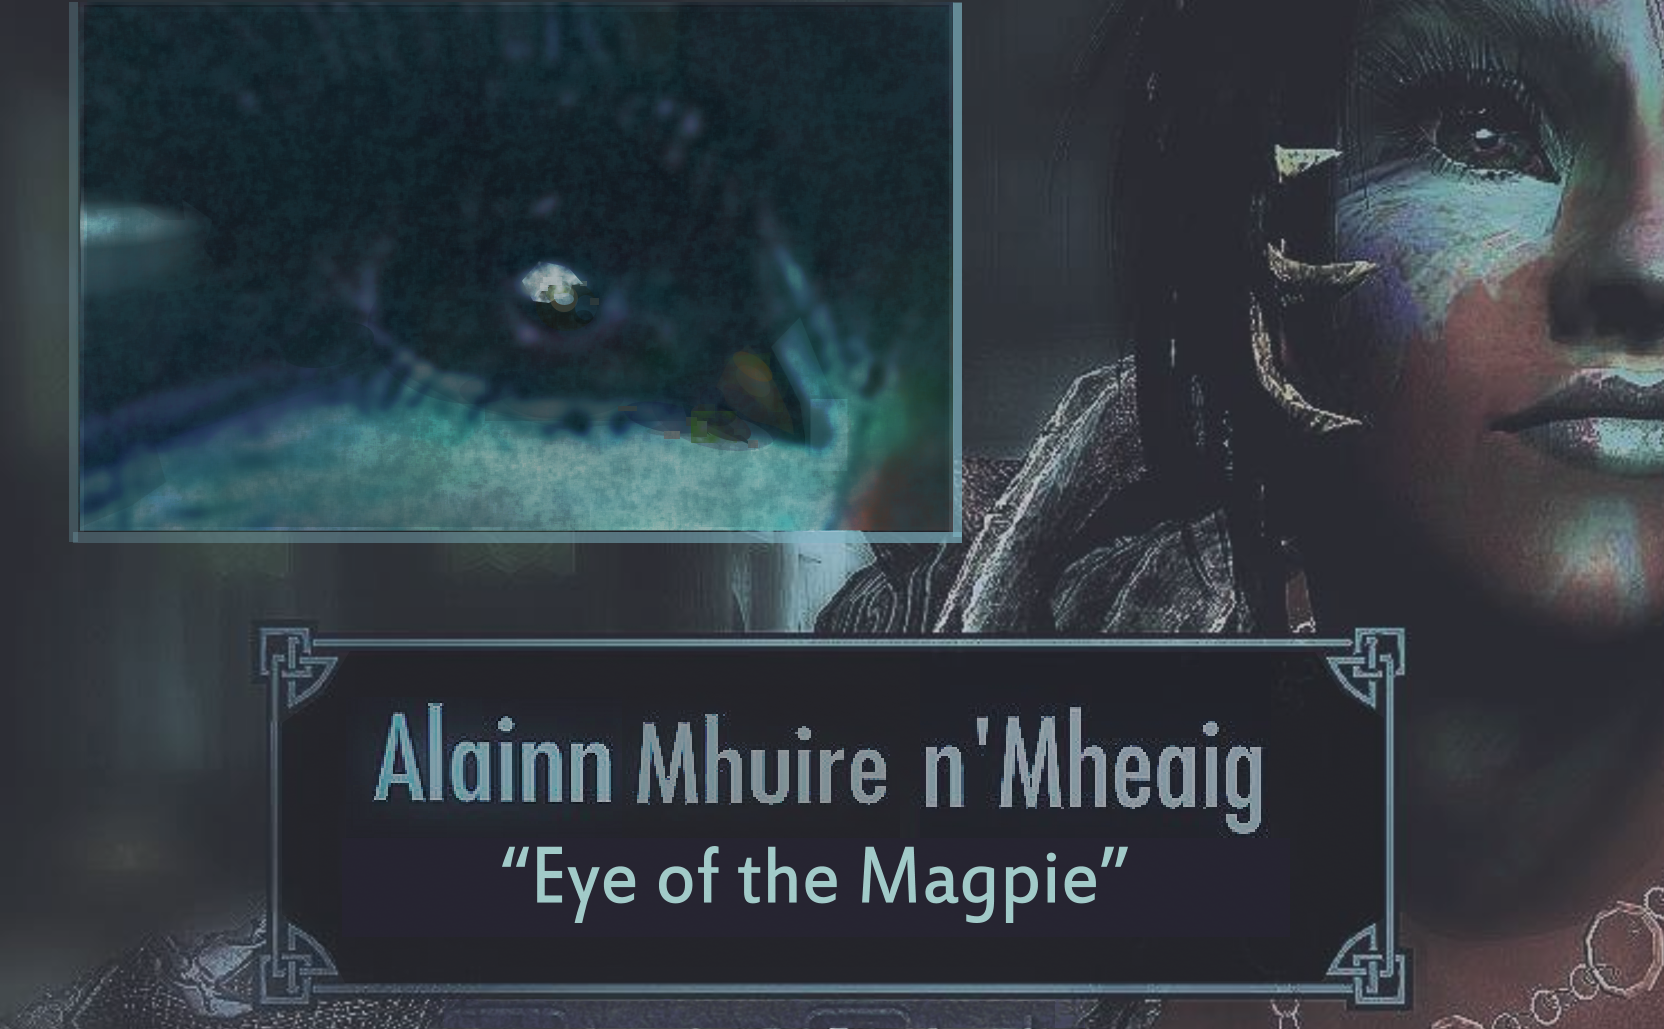 Eye of the Magpie or Eye of Mheaig